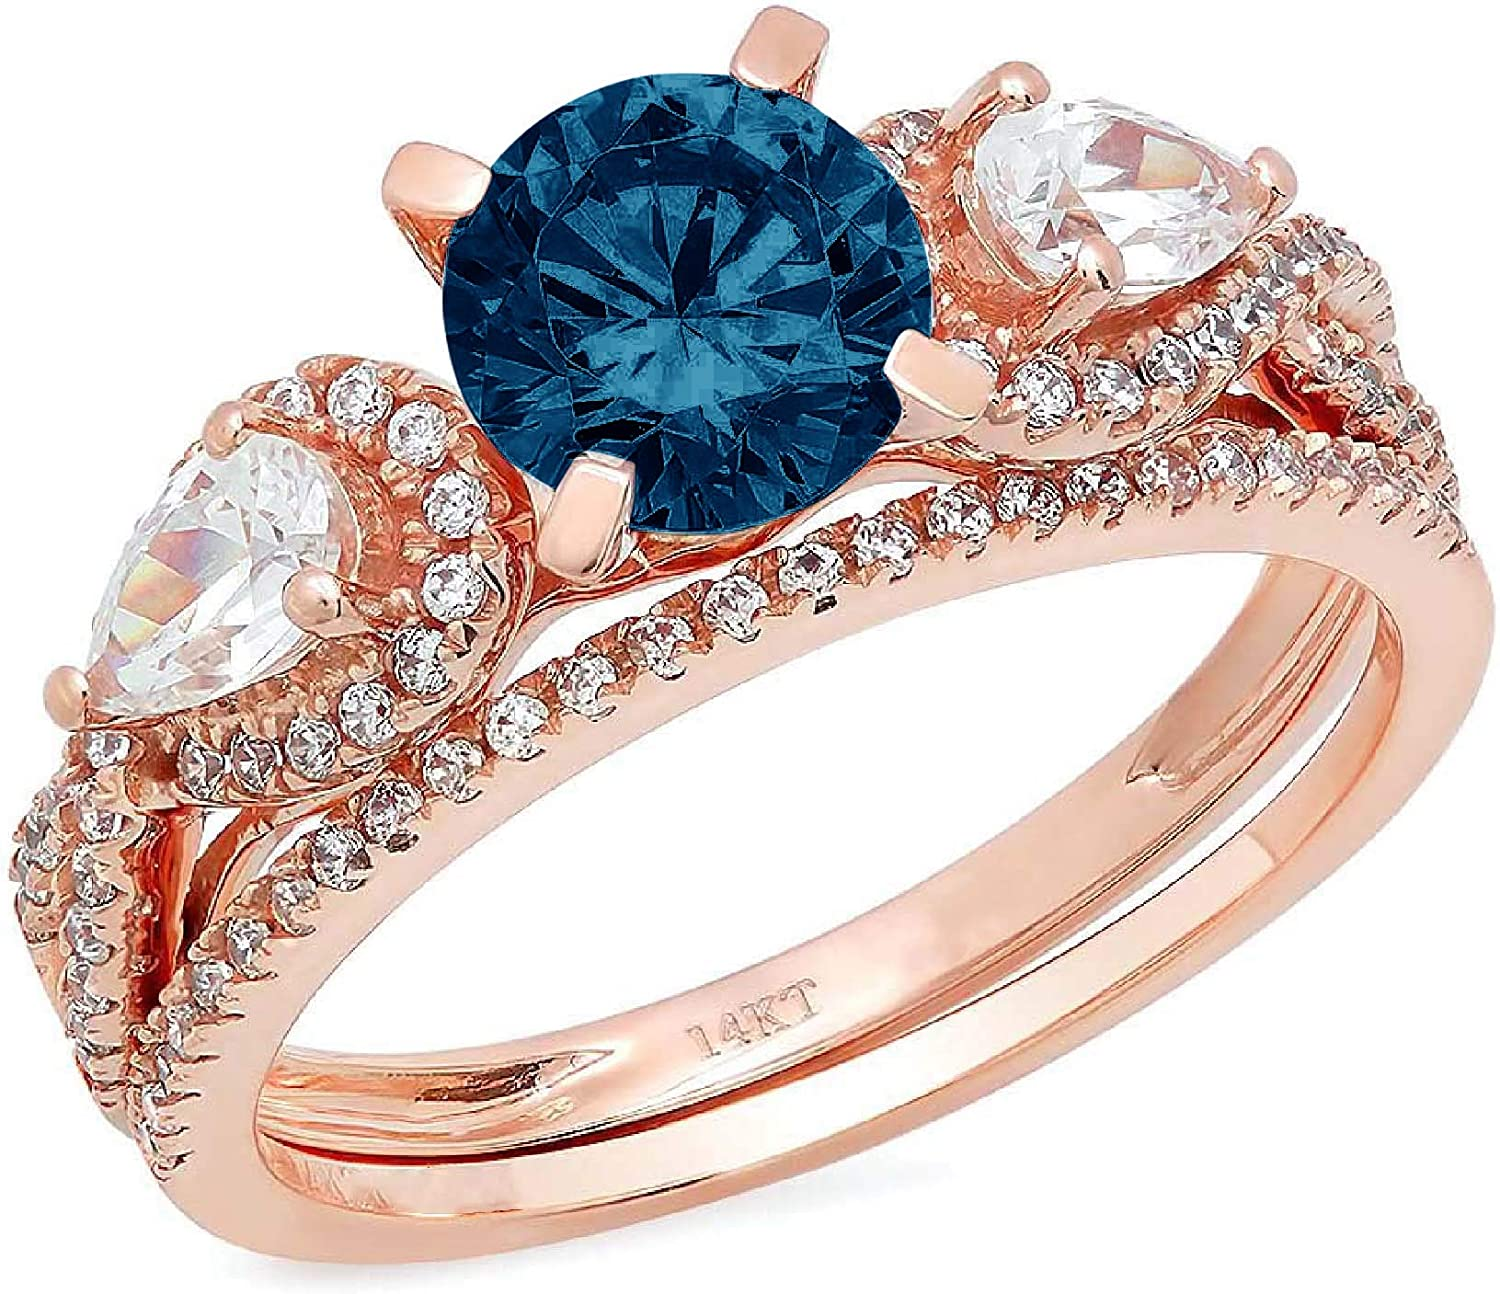 1.94ct Round Pear Cut Solitaire 3 stone With Accent VVS1 Ideal Natural Royal Blue Engagement Promise Designer Anniversary Wedding Bridal Ring band set 14k Rose Gold